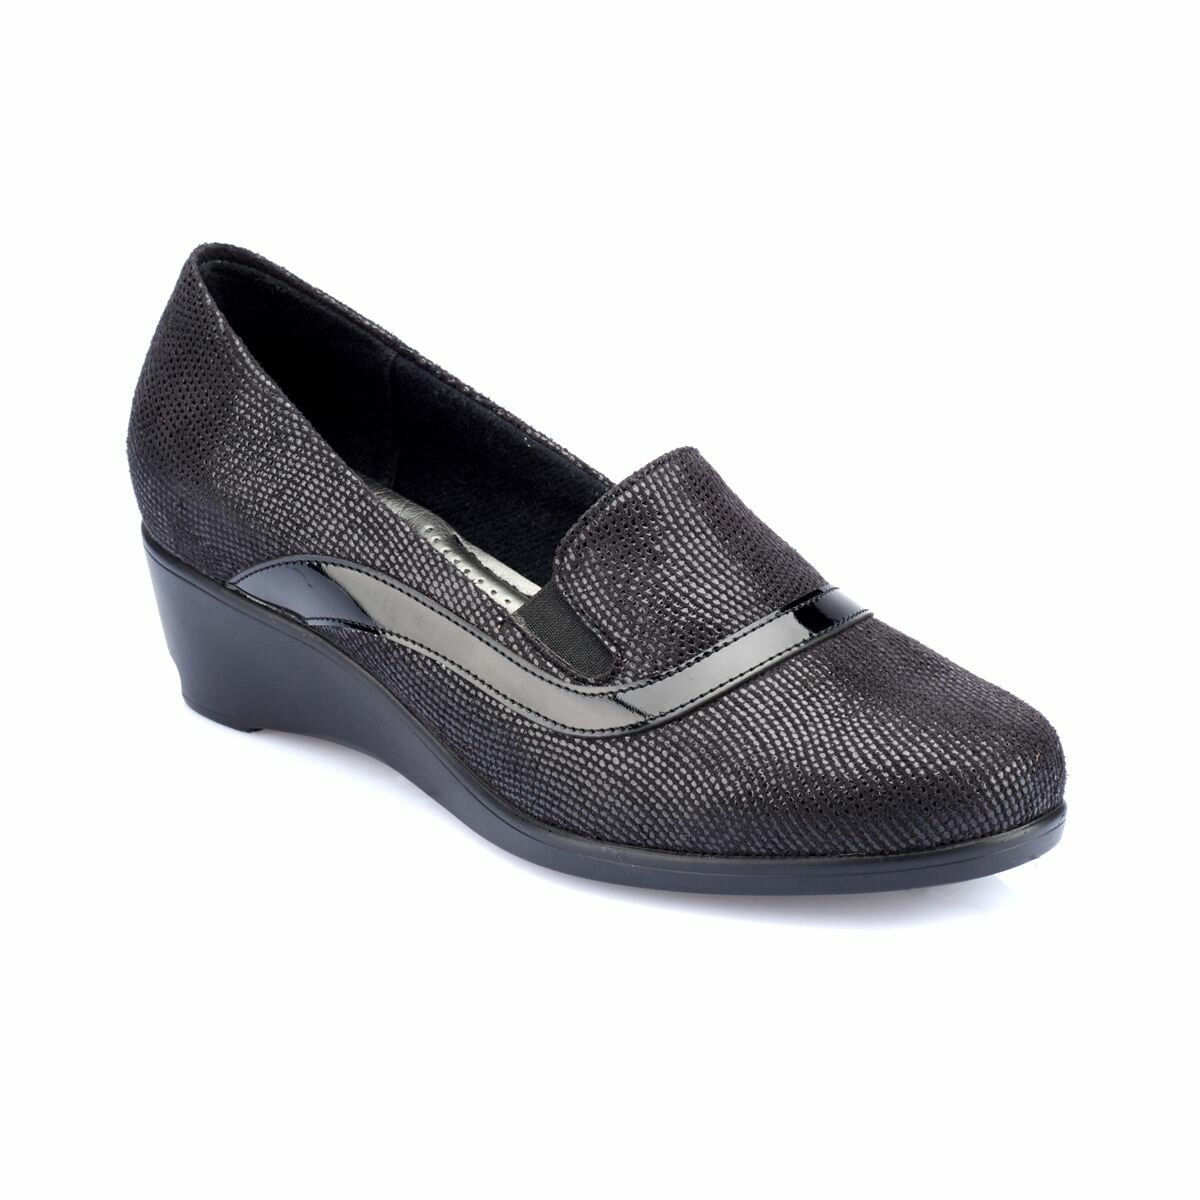 FLO 82.150013GZ Black Women Shoes Polaris